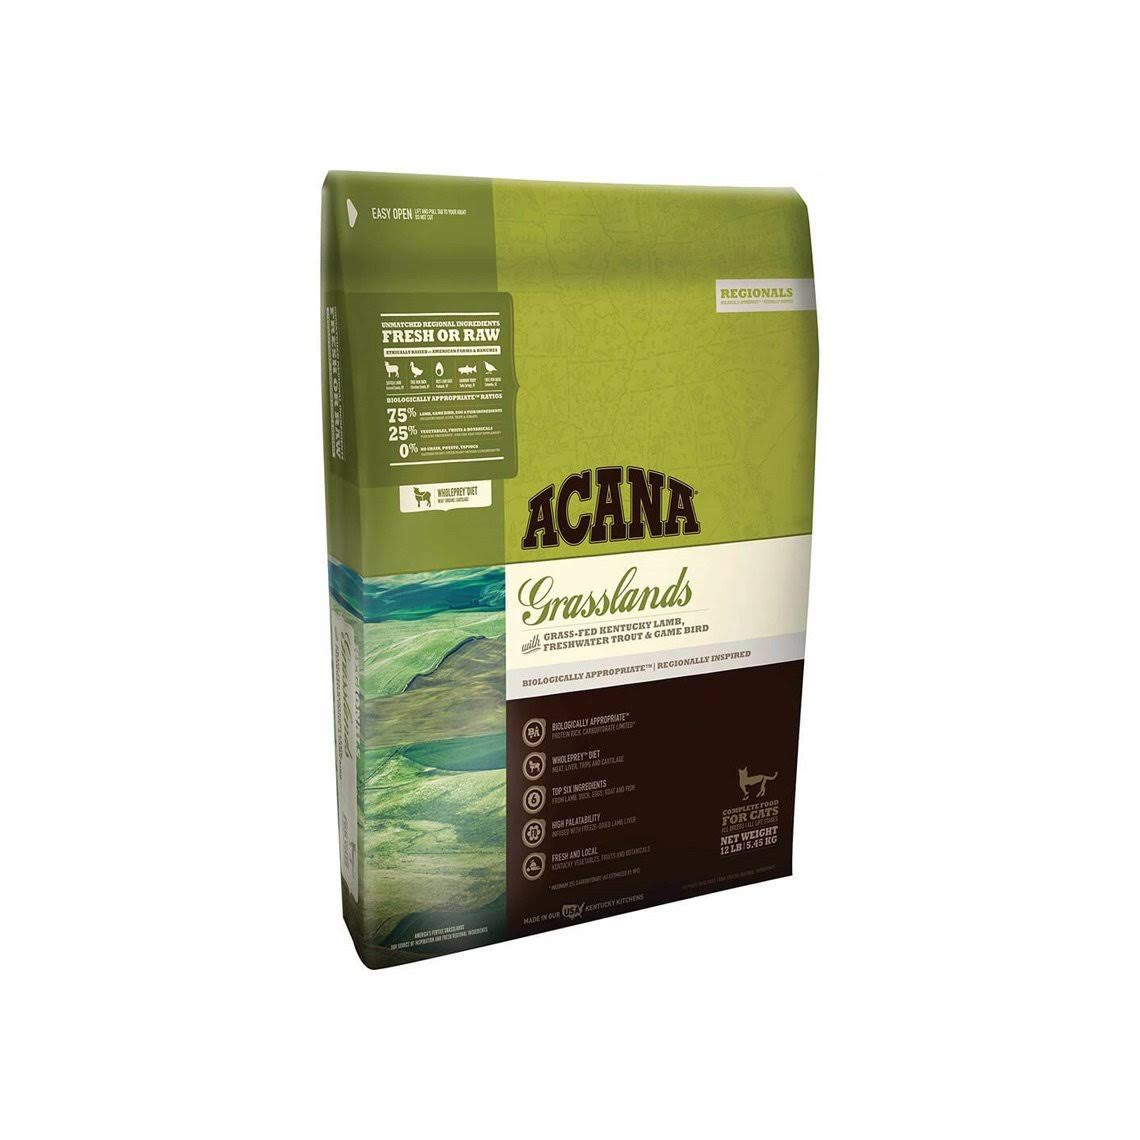 Acana Grasslands Cat Food - 0.88 lbs bag